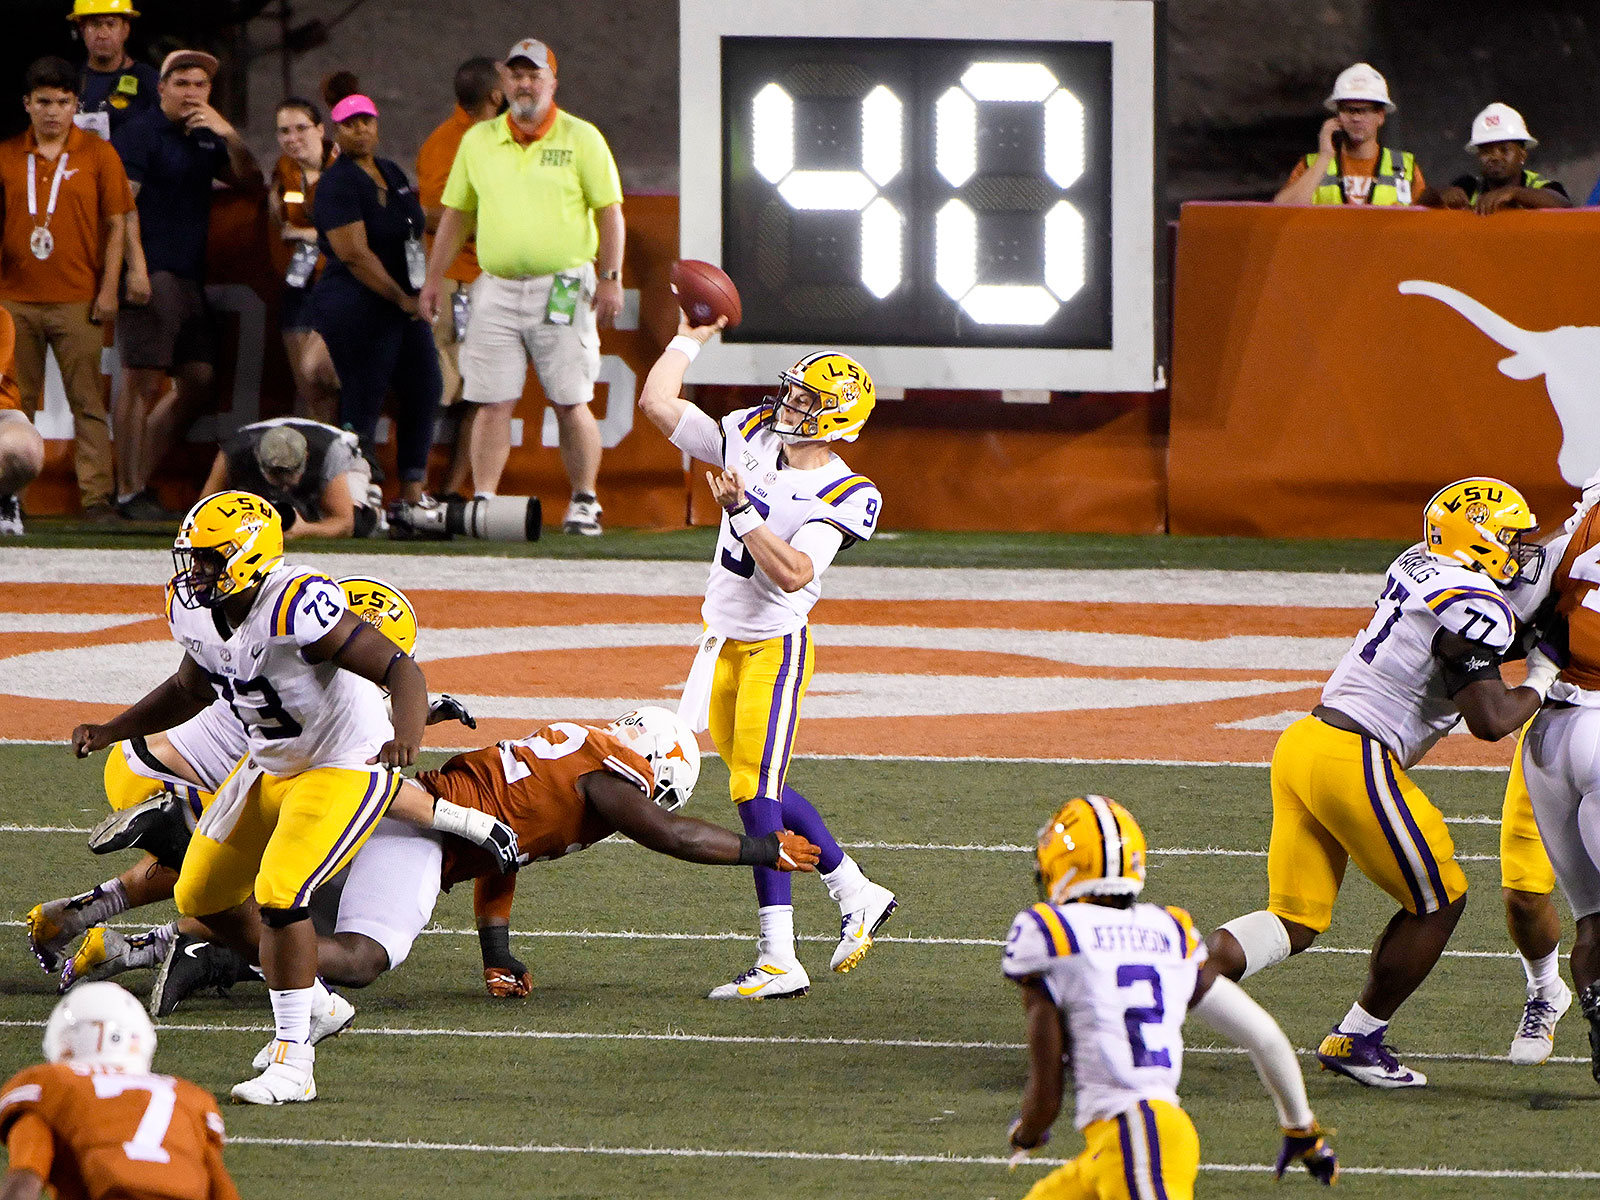 LSU vs Texas football Joe Burrow spread offense